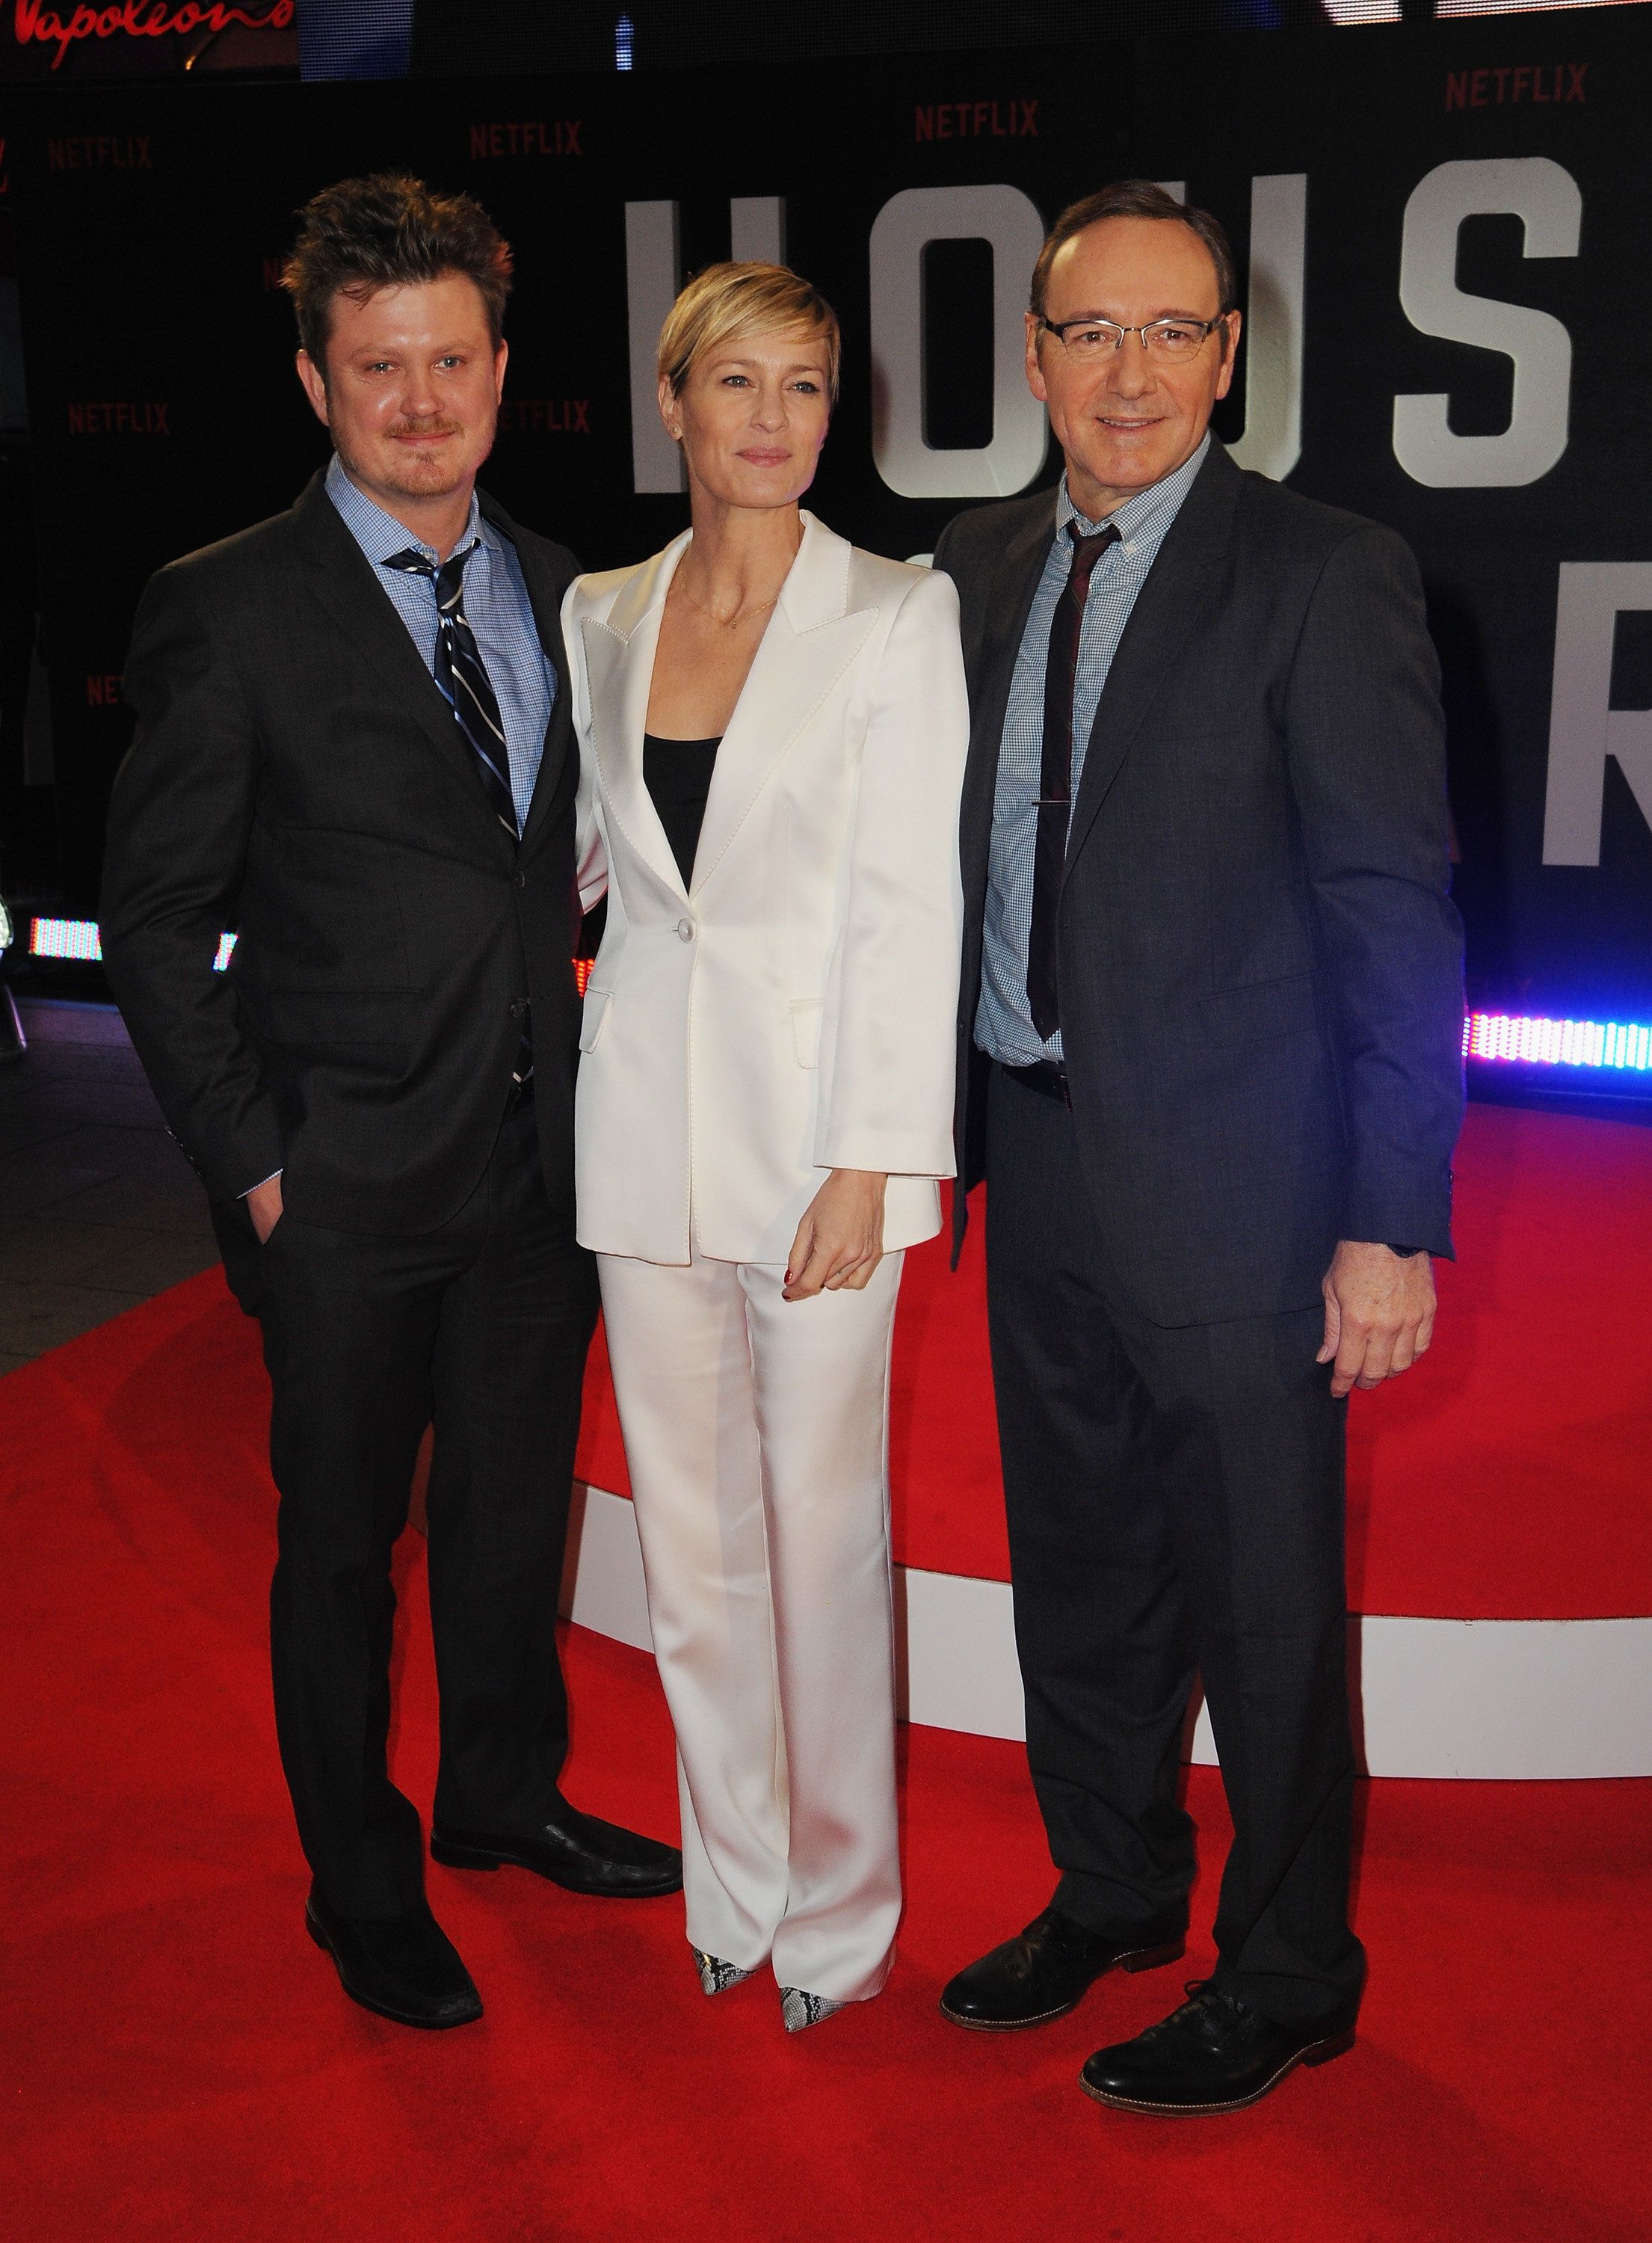 LONDON, ENGLAND - FEBRUARY 26:  Beau Willimon, Robin Wright and Kevin Spacey attend the World Premiere of 'House of Cards' Season 3 at The Empire Cinema on February 26, 2015 in London, England.  (Photo by Dave J Hogan/Getty Images)